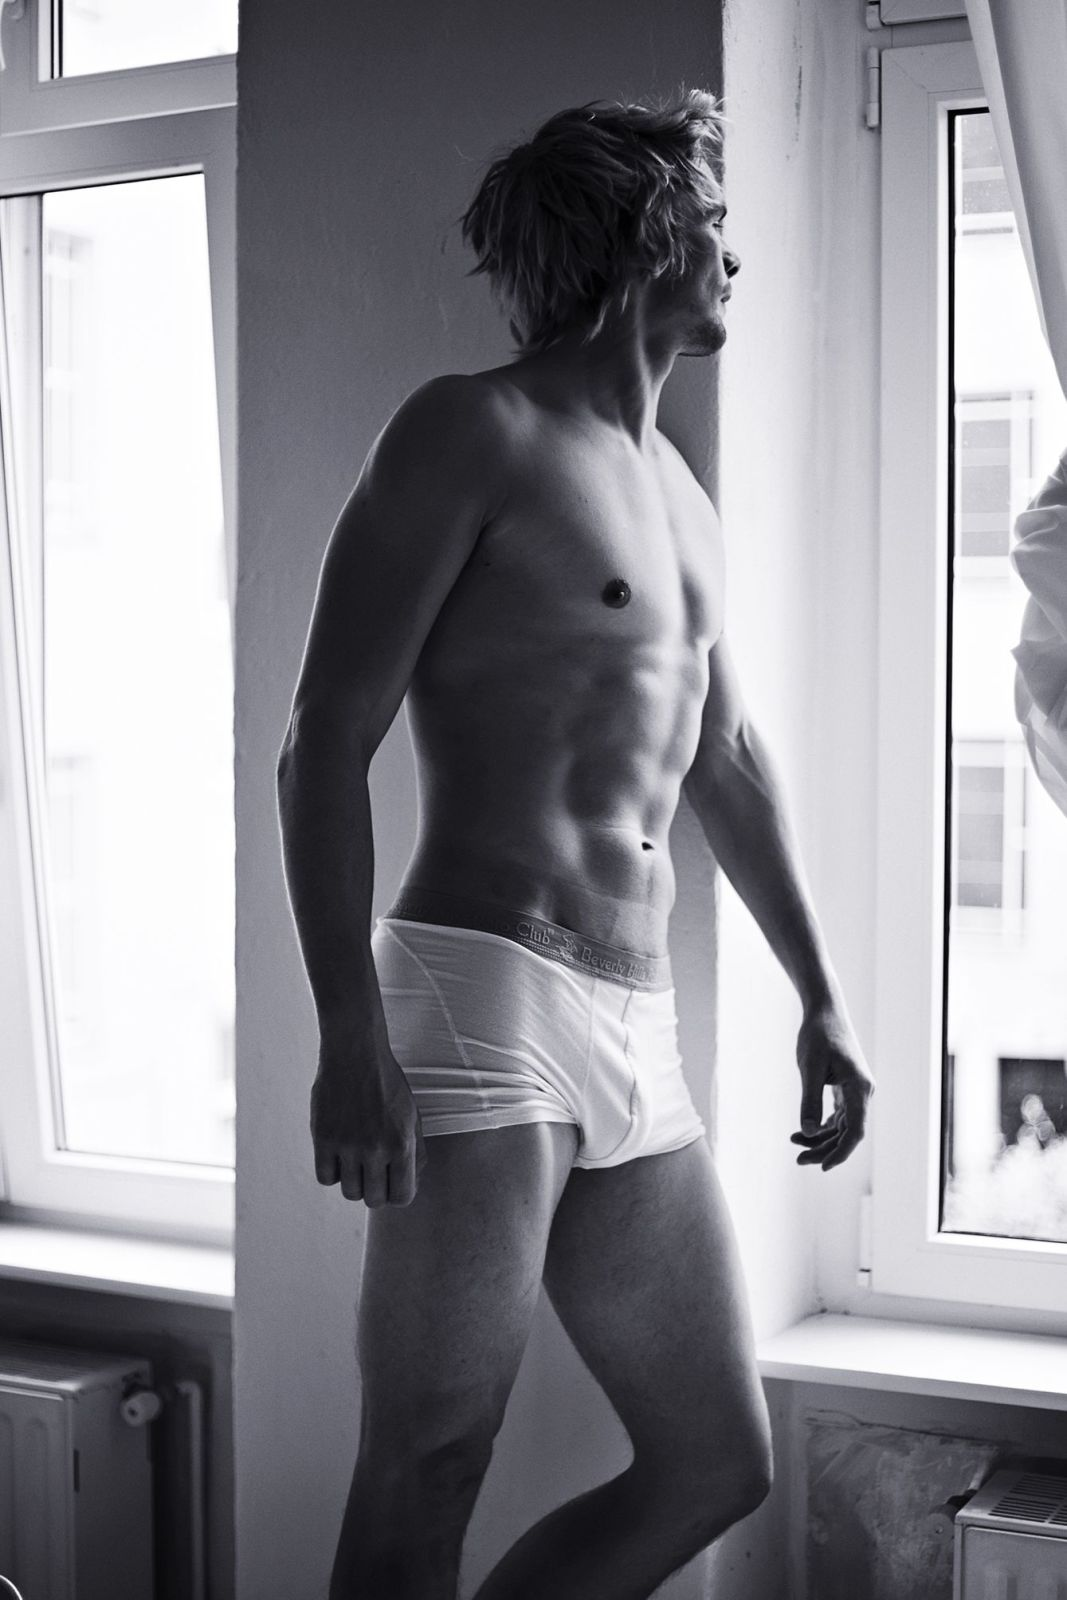 Athlete portrait of a young man standing next to a window in his schiesser underwear